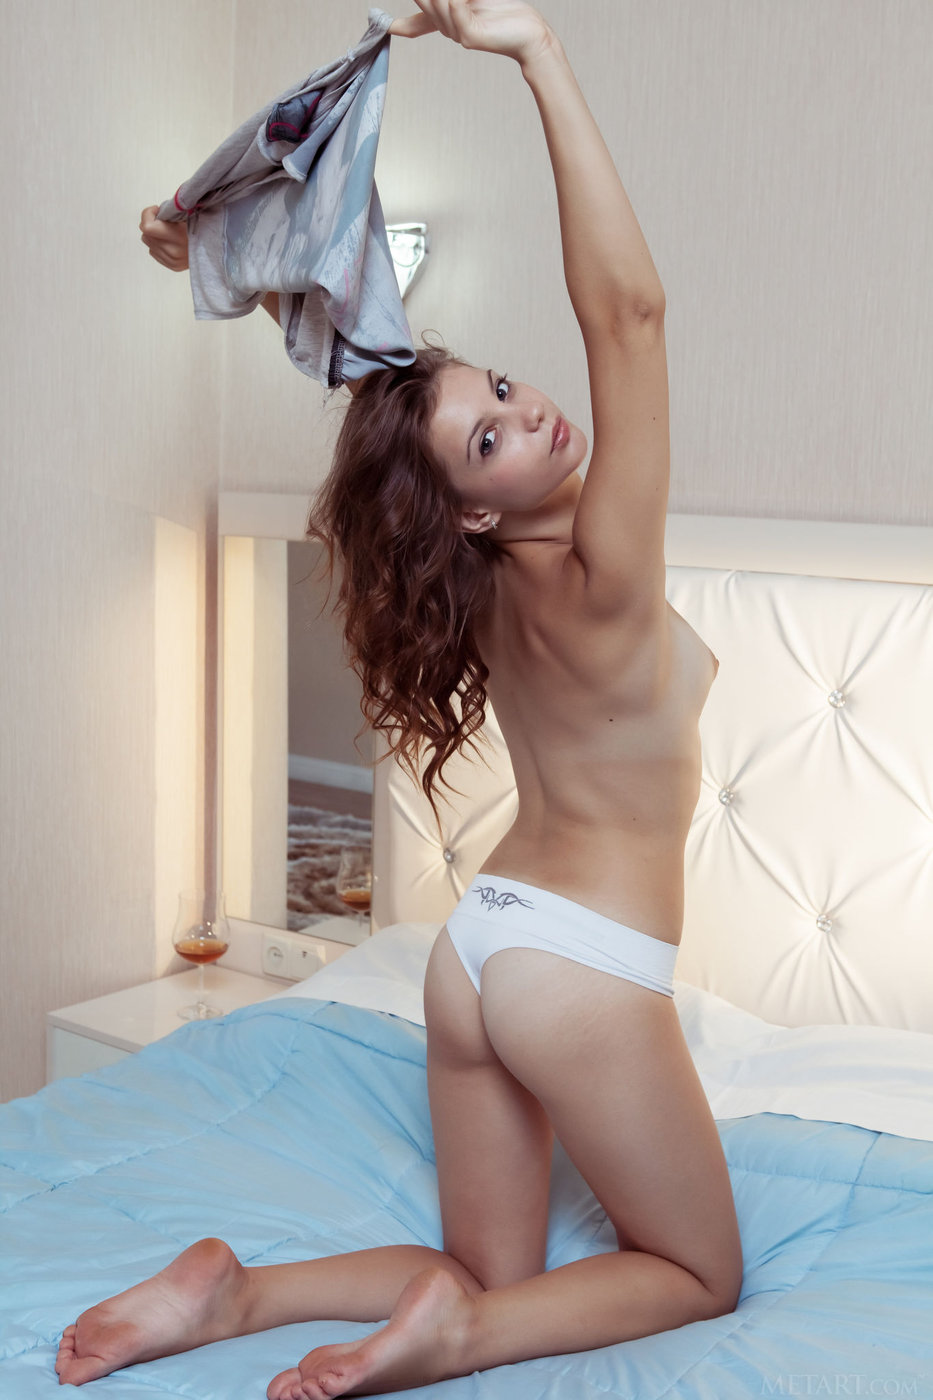 Teen takes off her white panties to pose stretched out on a bed